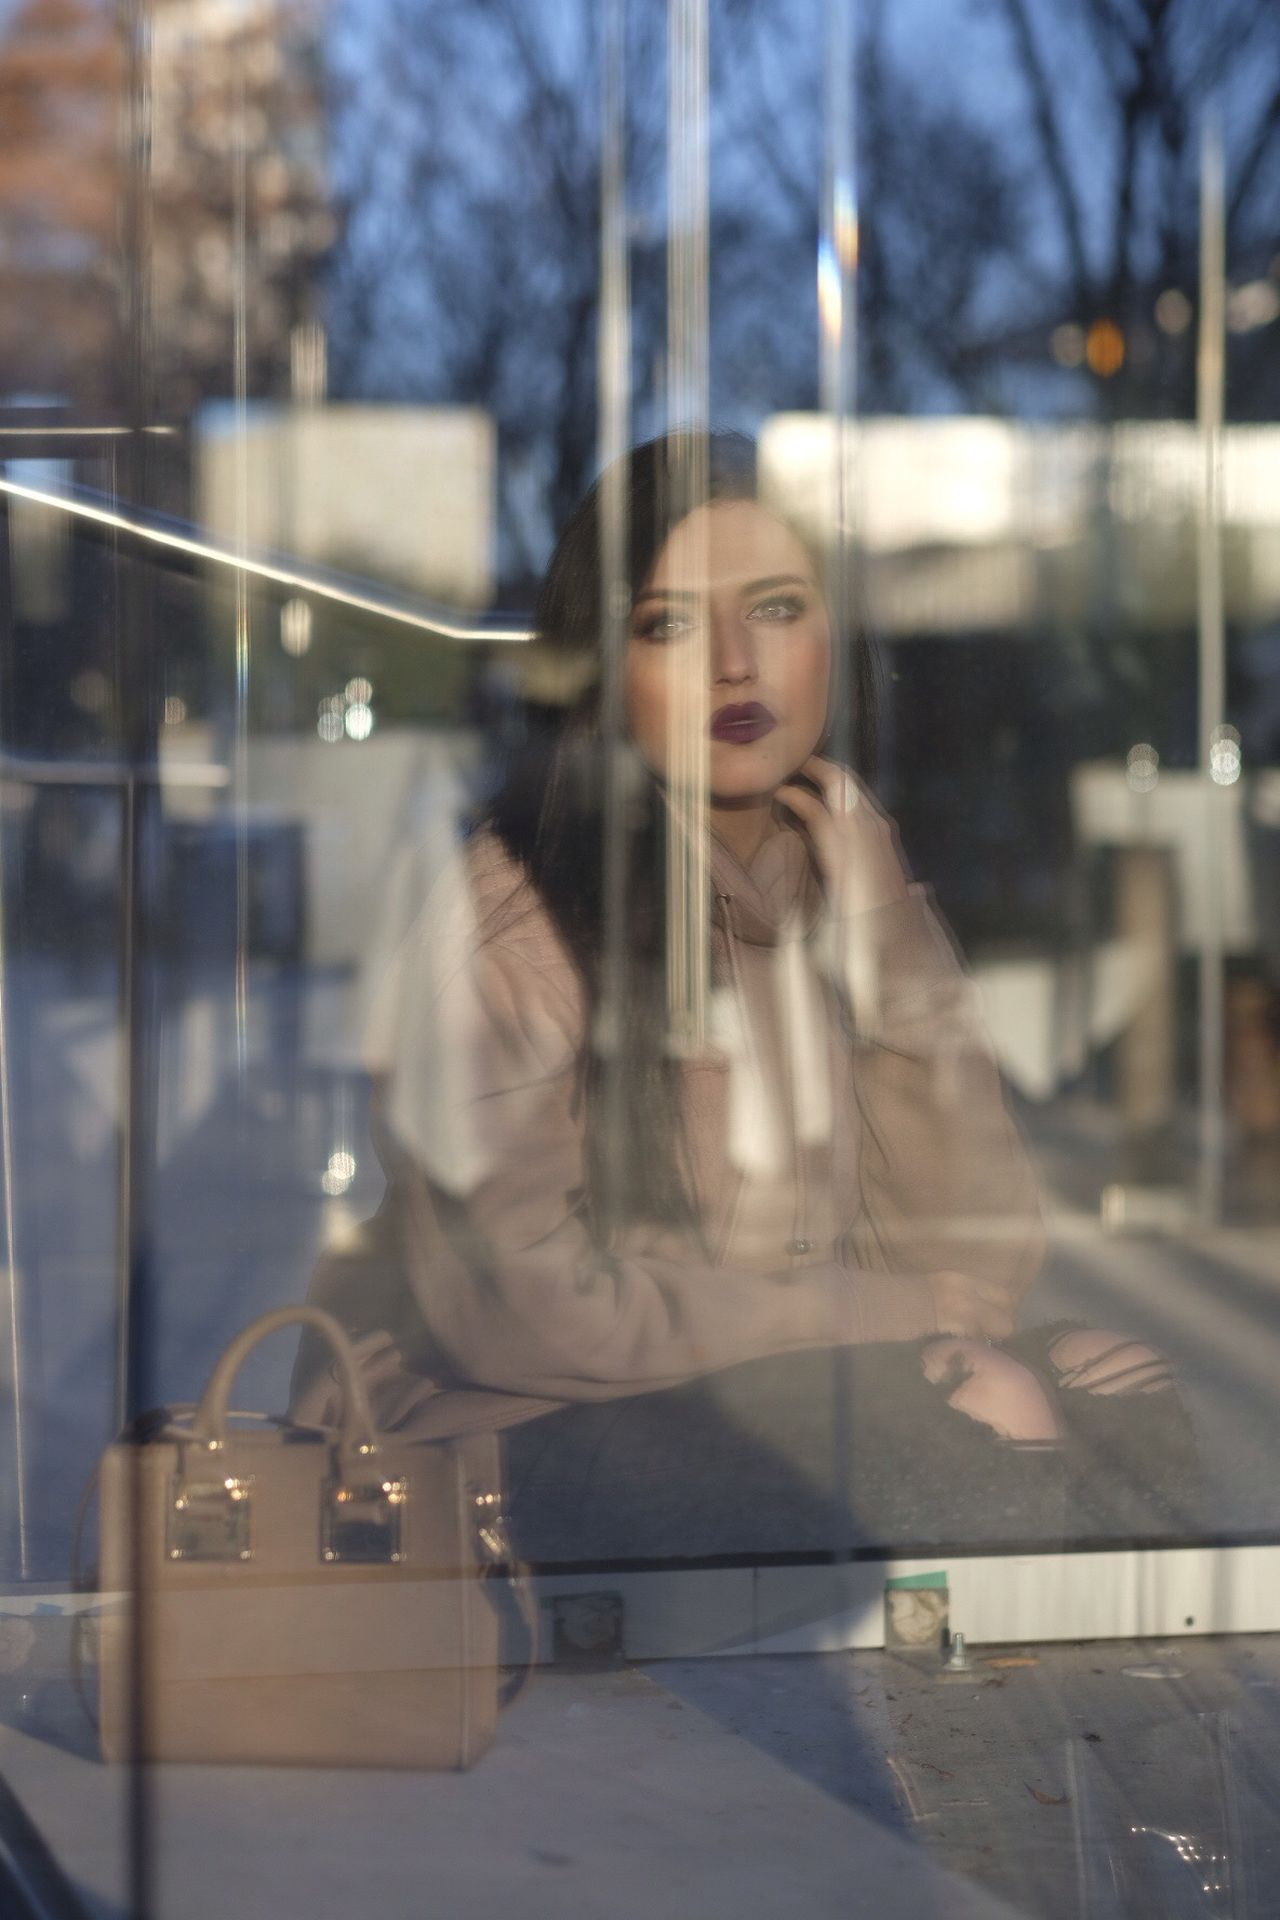 Reflection Beautiful Woman One Person Women Real People Young Women Businesswoman One Woman Only Leisure Activity Business Only Women Young Adult Technology Smiling Tree Indoors  One Young Woman Only Day Adult People Fresh On Market 2017